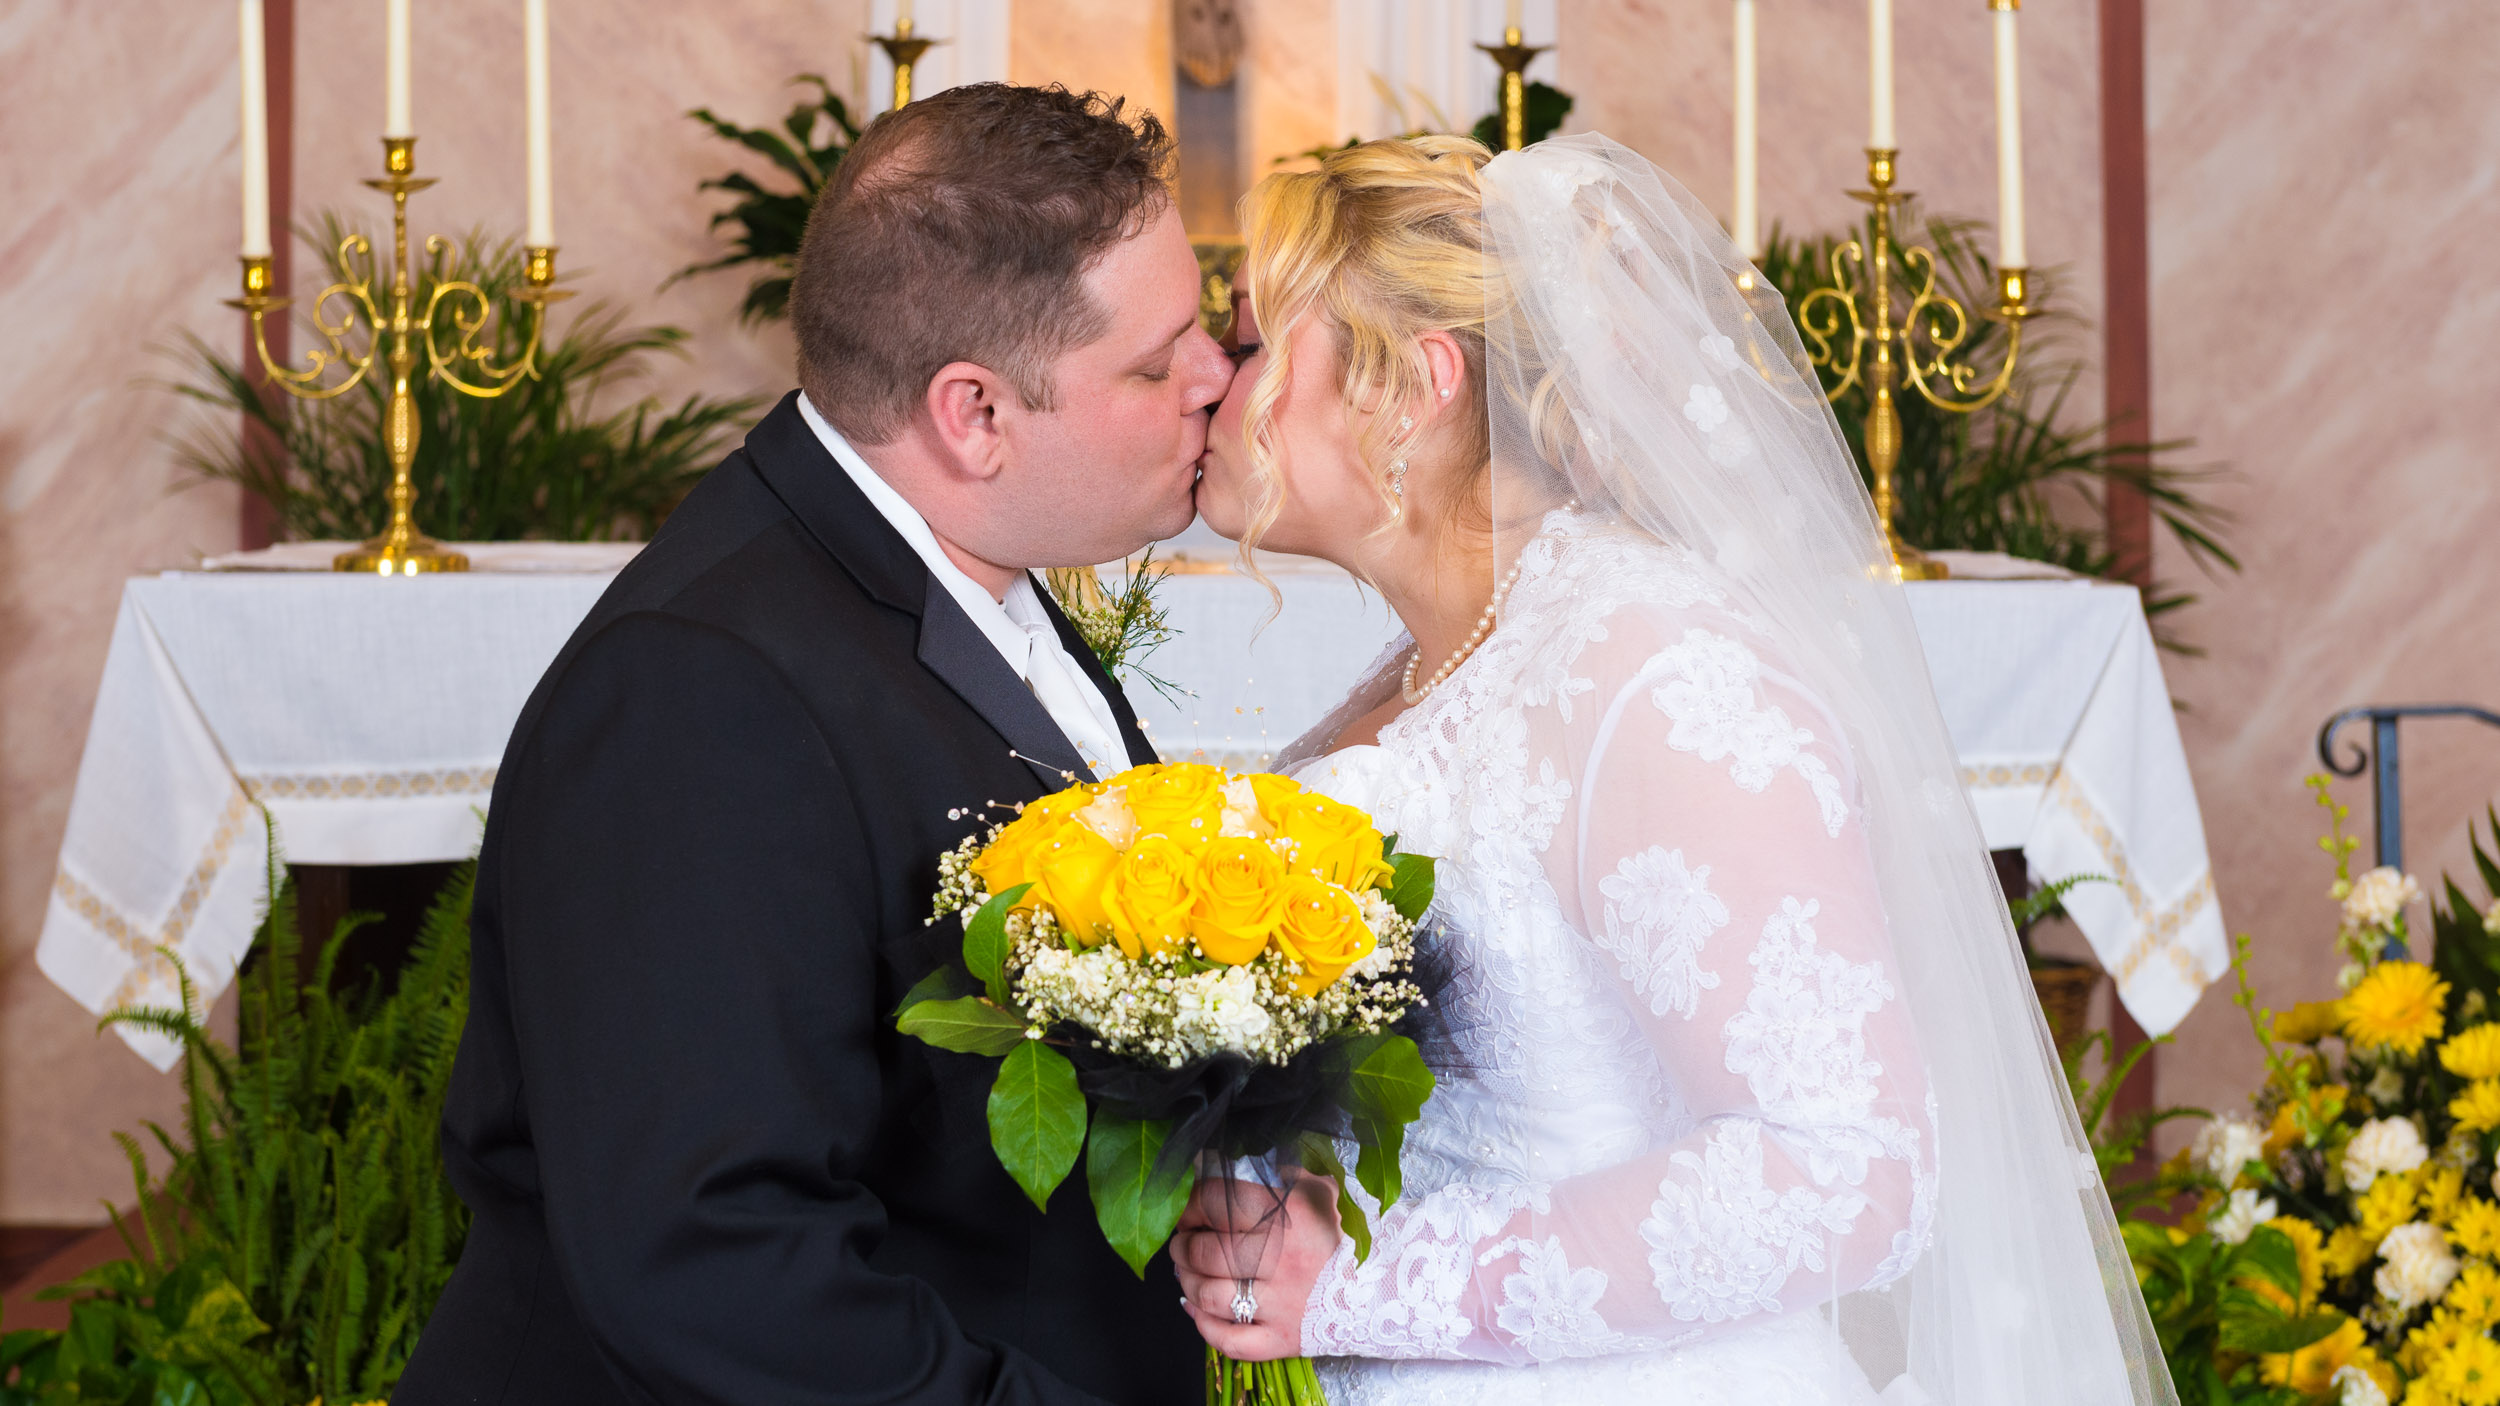 Bride-and-Groom-First-Kiss-3.jpg